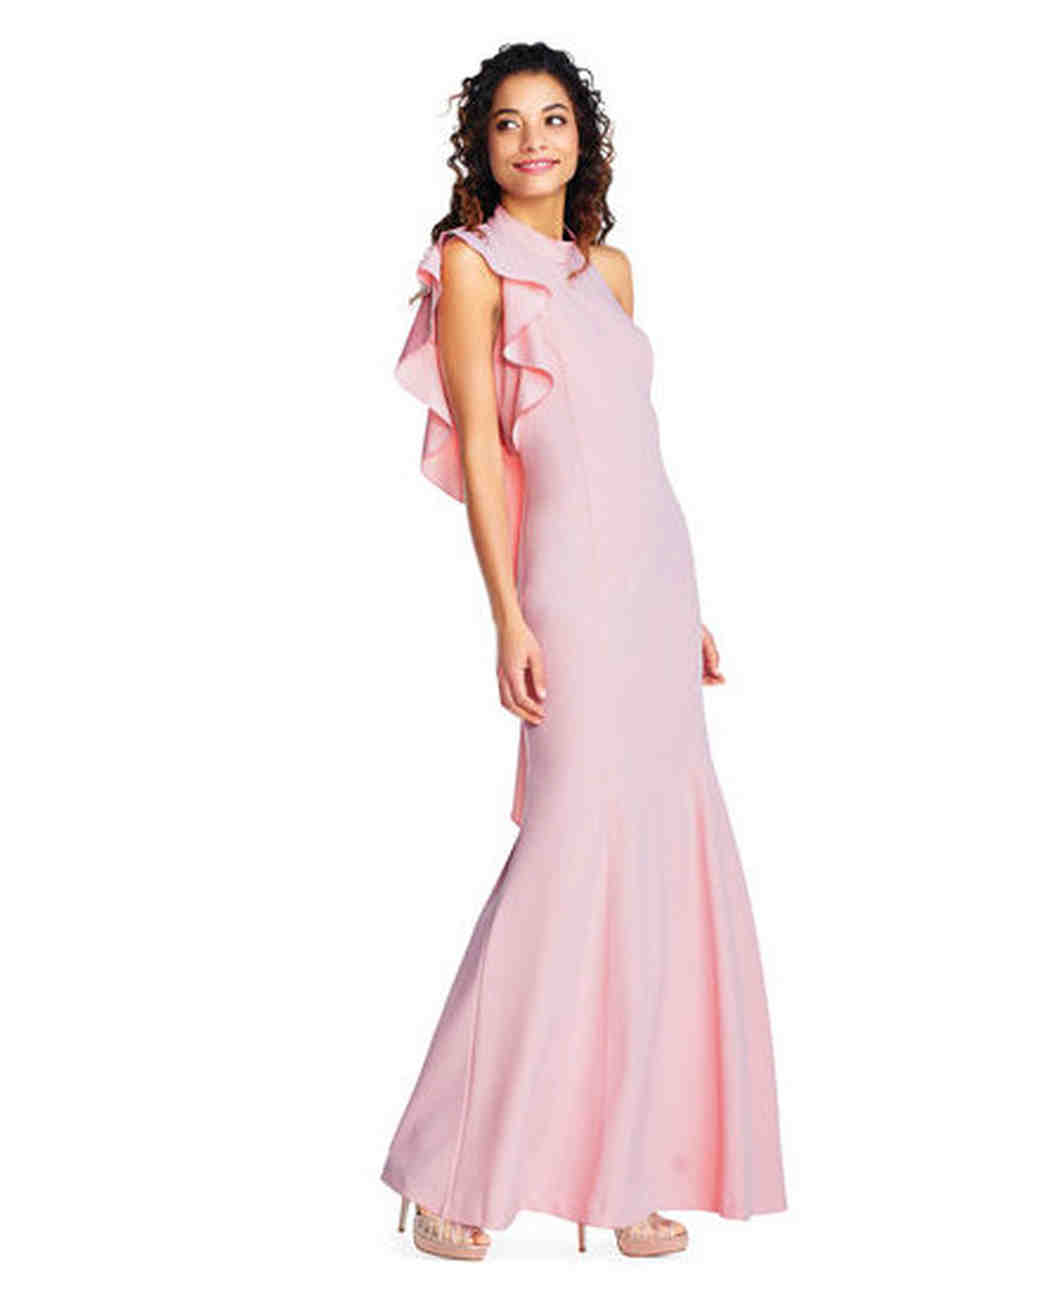 The Prettiest Pink Mother-of-the-Bride and-Groom Dresses  8056e1c030f3